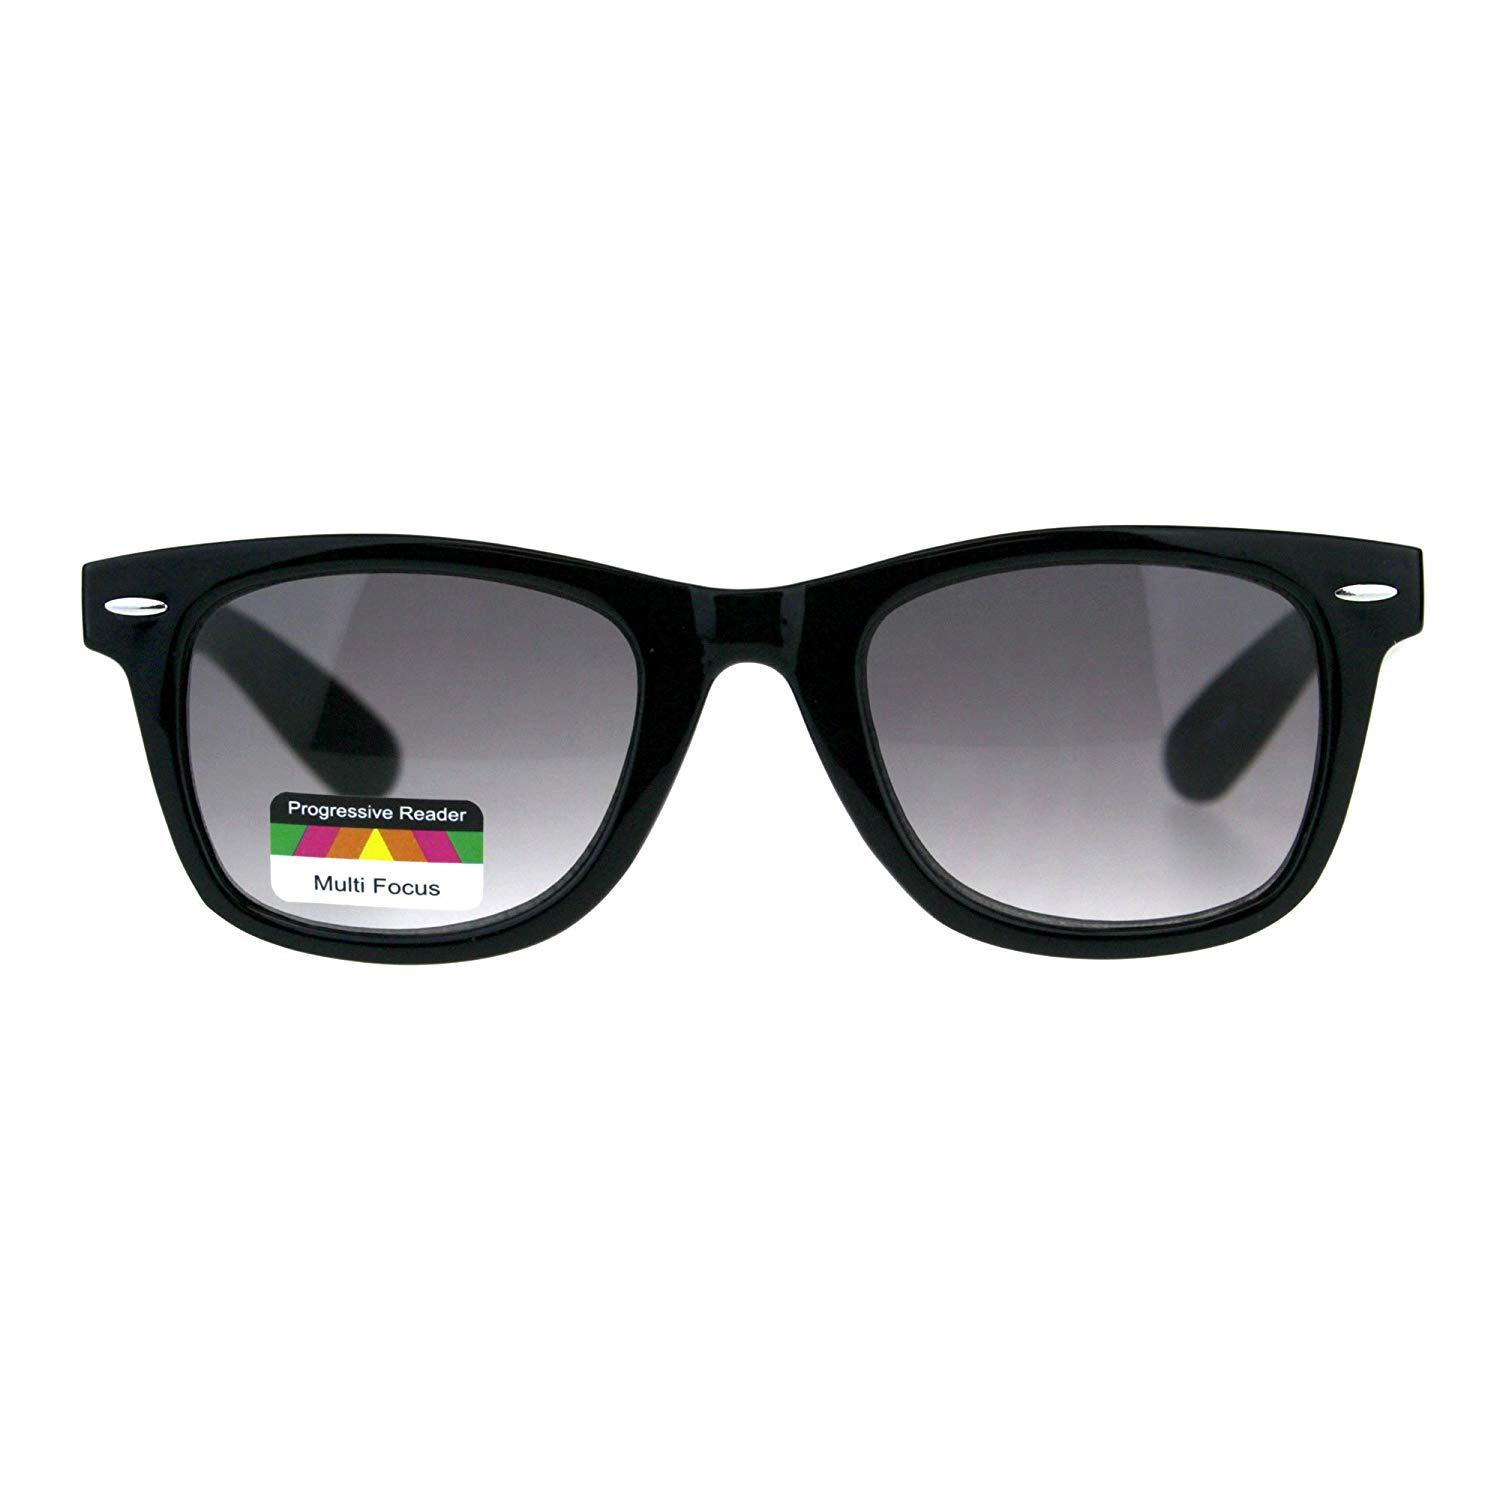 ff8b35497d Get Quotations · Retro Horn Rim Multi 3 Focus Progressive Sun Reader  Sunglasses